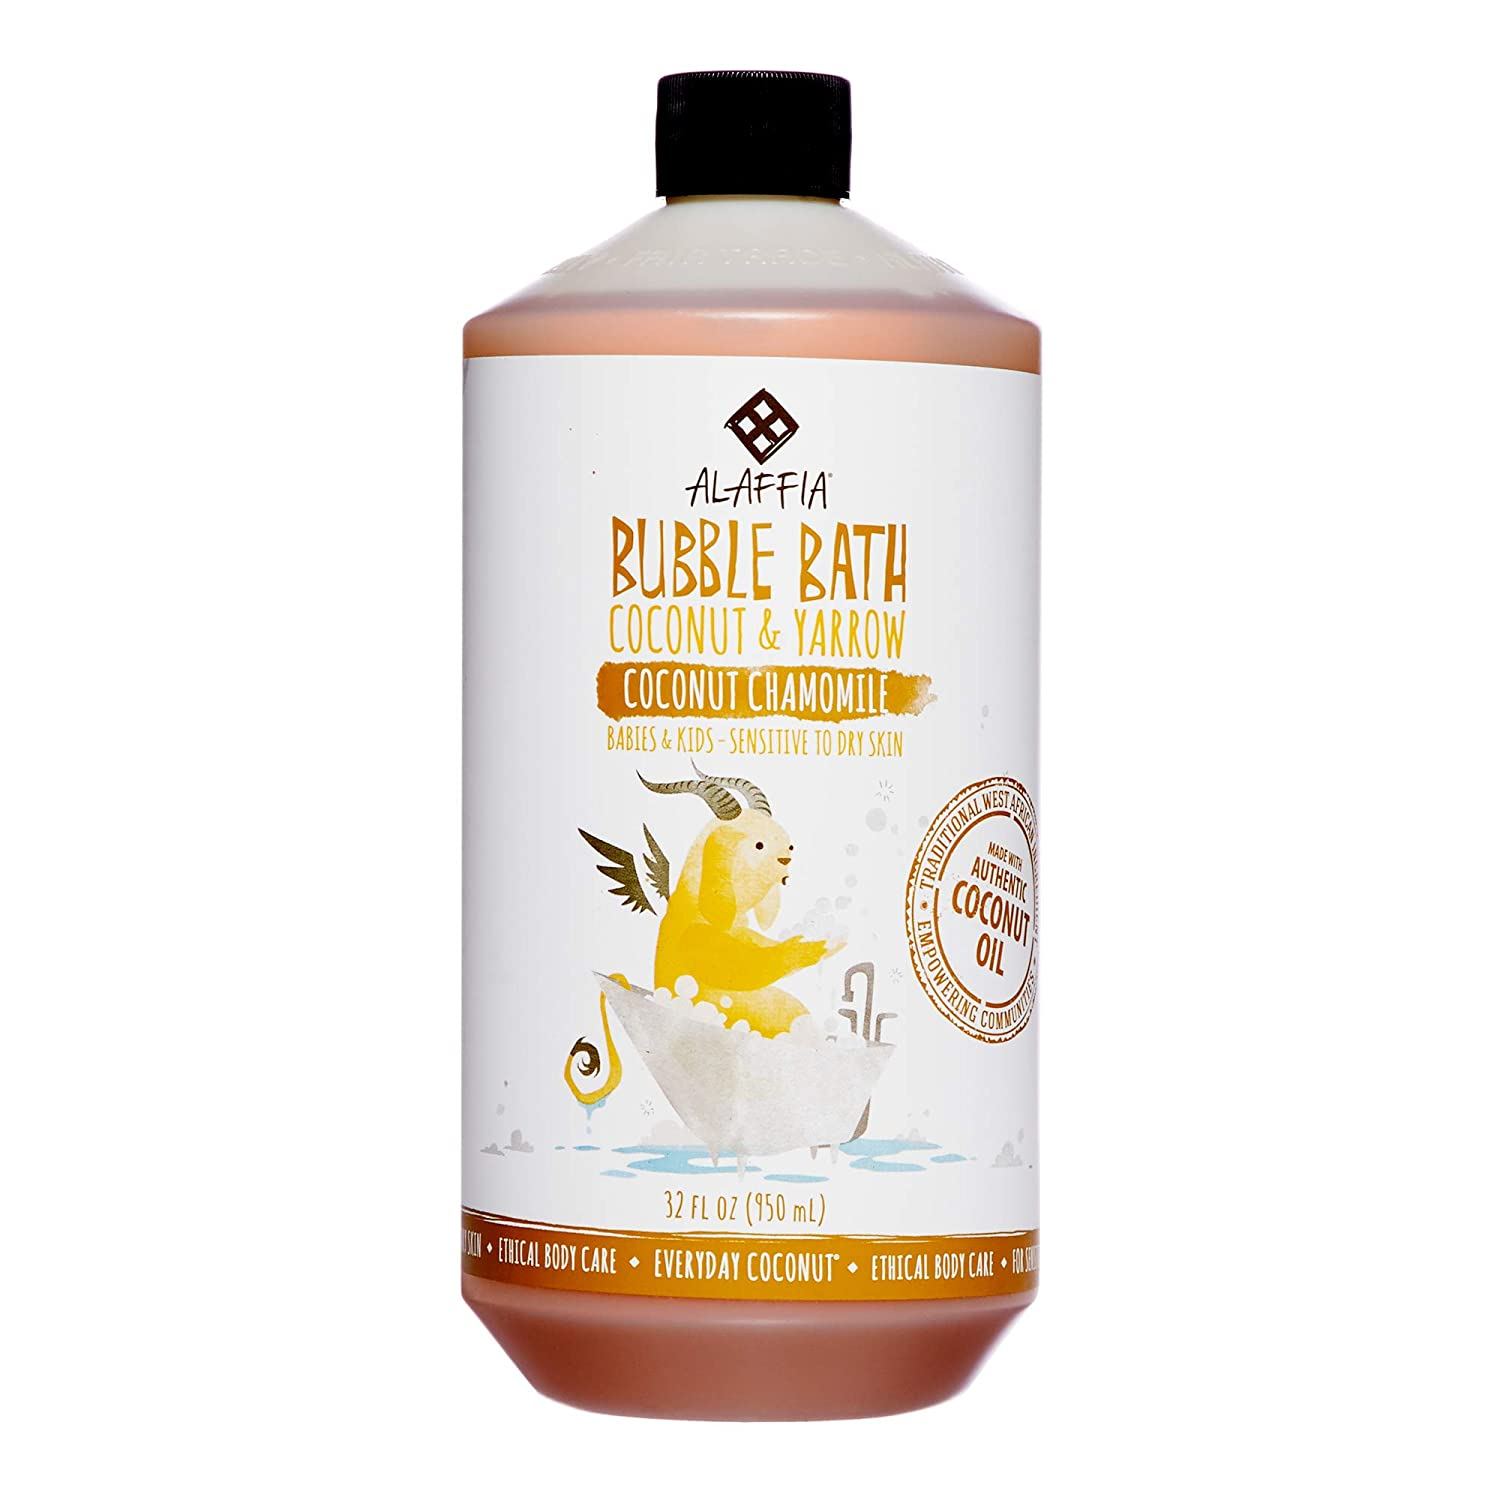 Alaffia - Everyday Coconut Bubble Bath, Gentle for Babies and Up, Supports Soft Skin and Relaxation with Yarrow, Chamomile, and Coconut Oil, Fair Trade, Naturally Foaming, Coconut Chamomile, 32 Ounces 4332391991